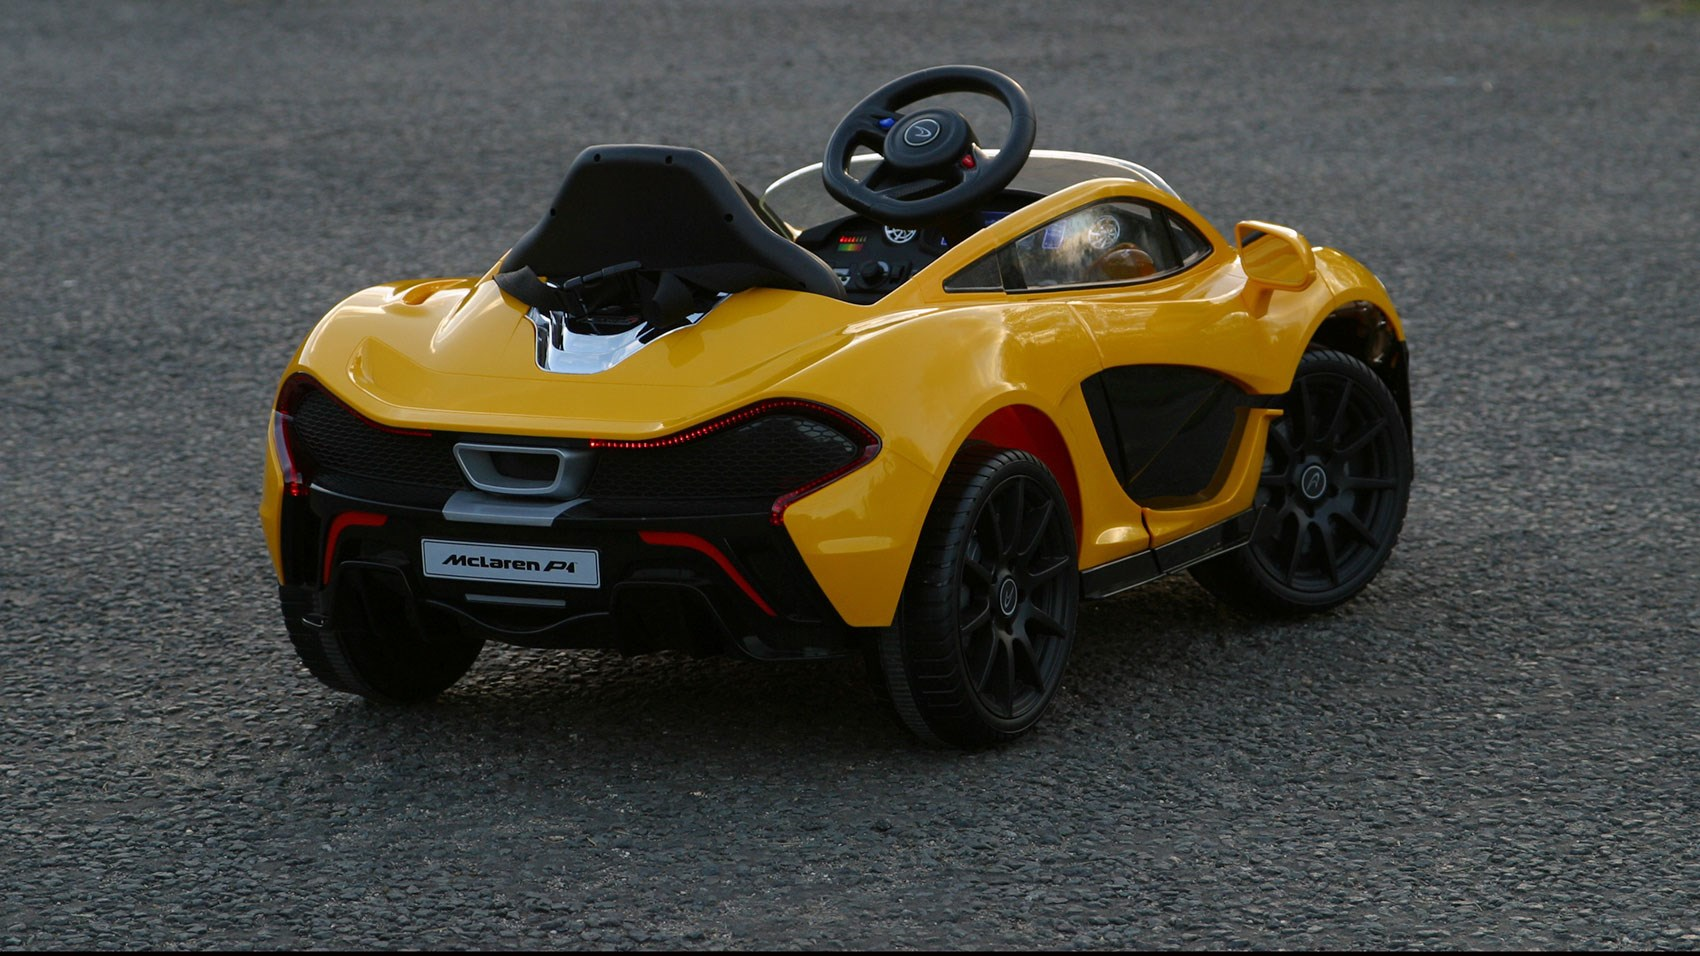 The Ride On McLaren P1: for the kid who has everything